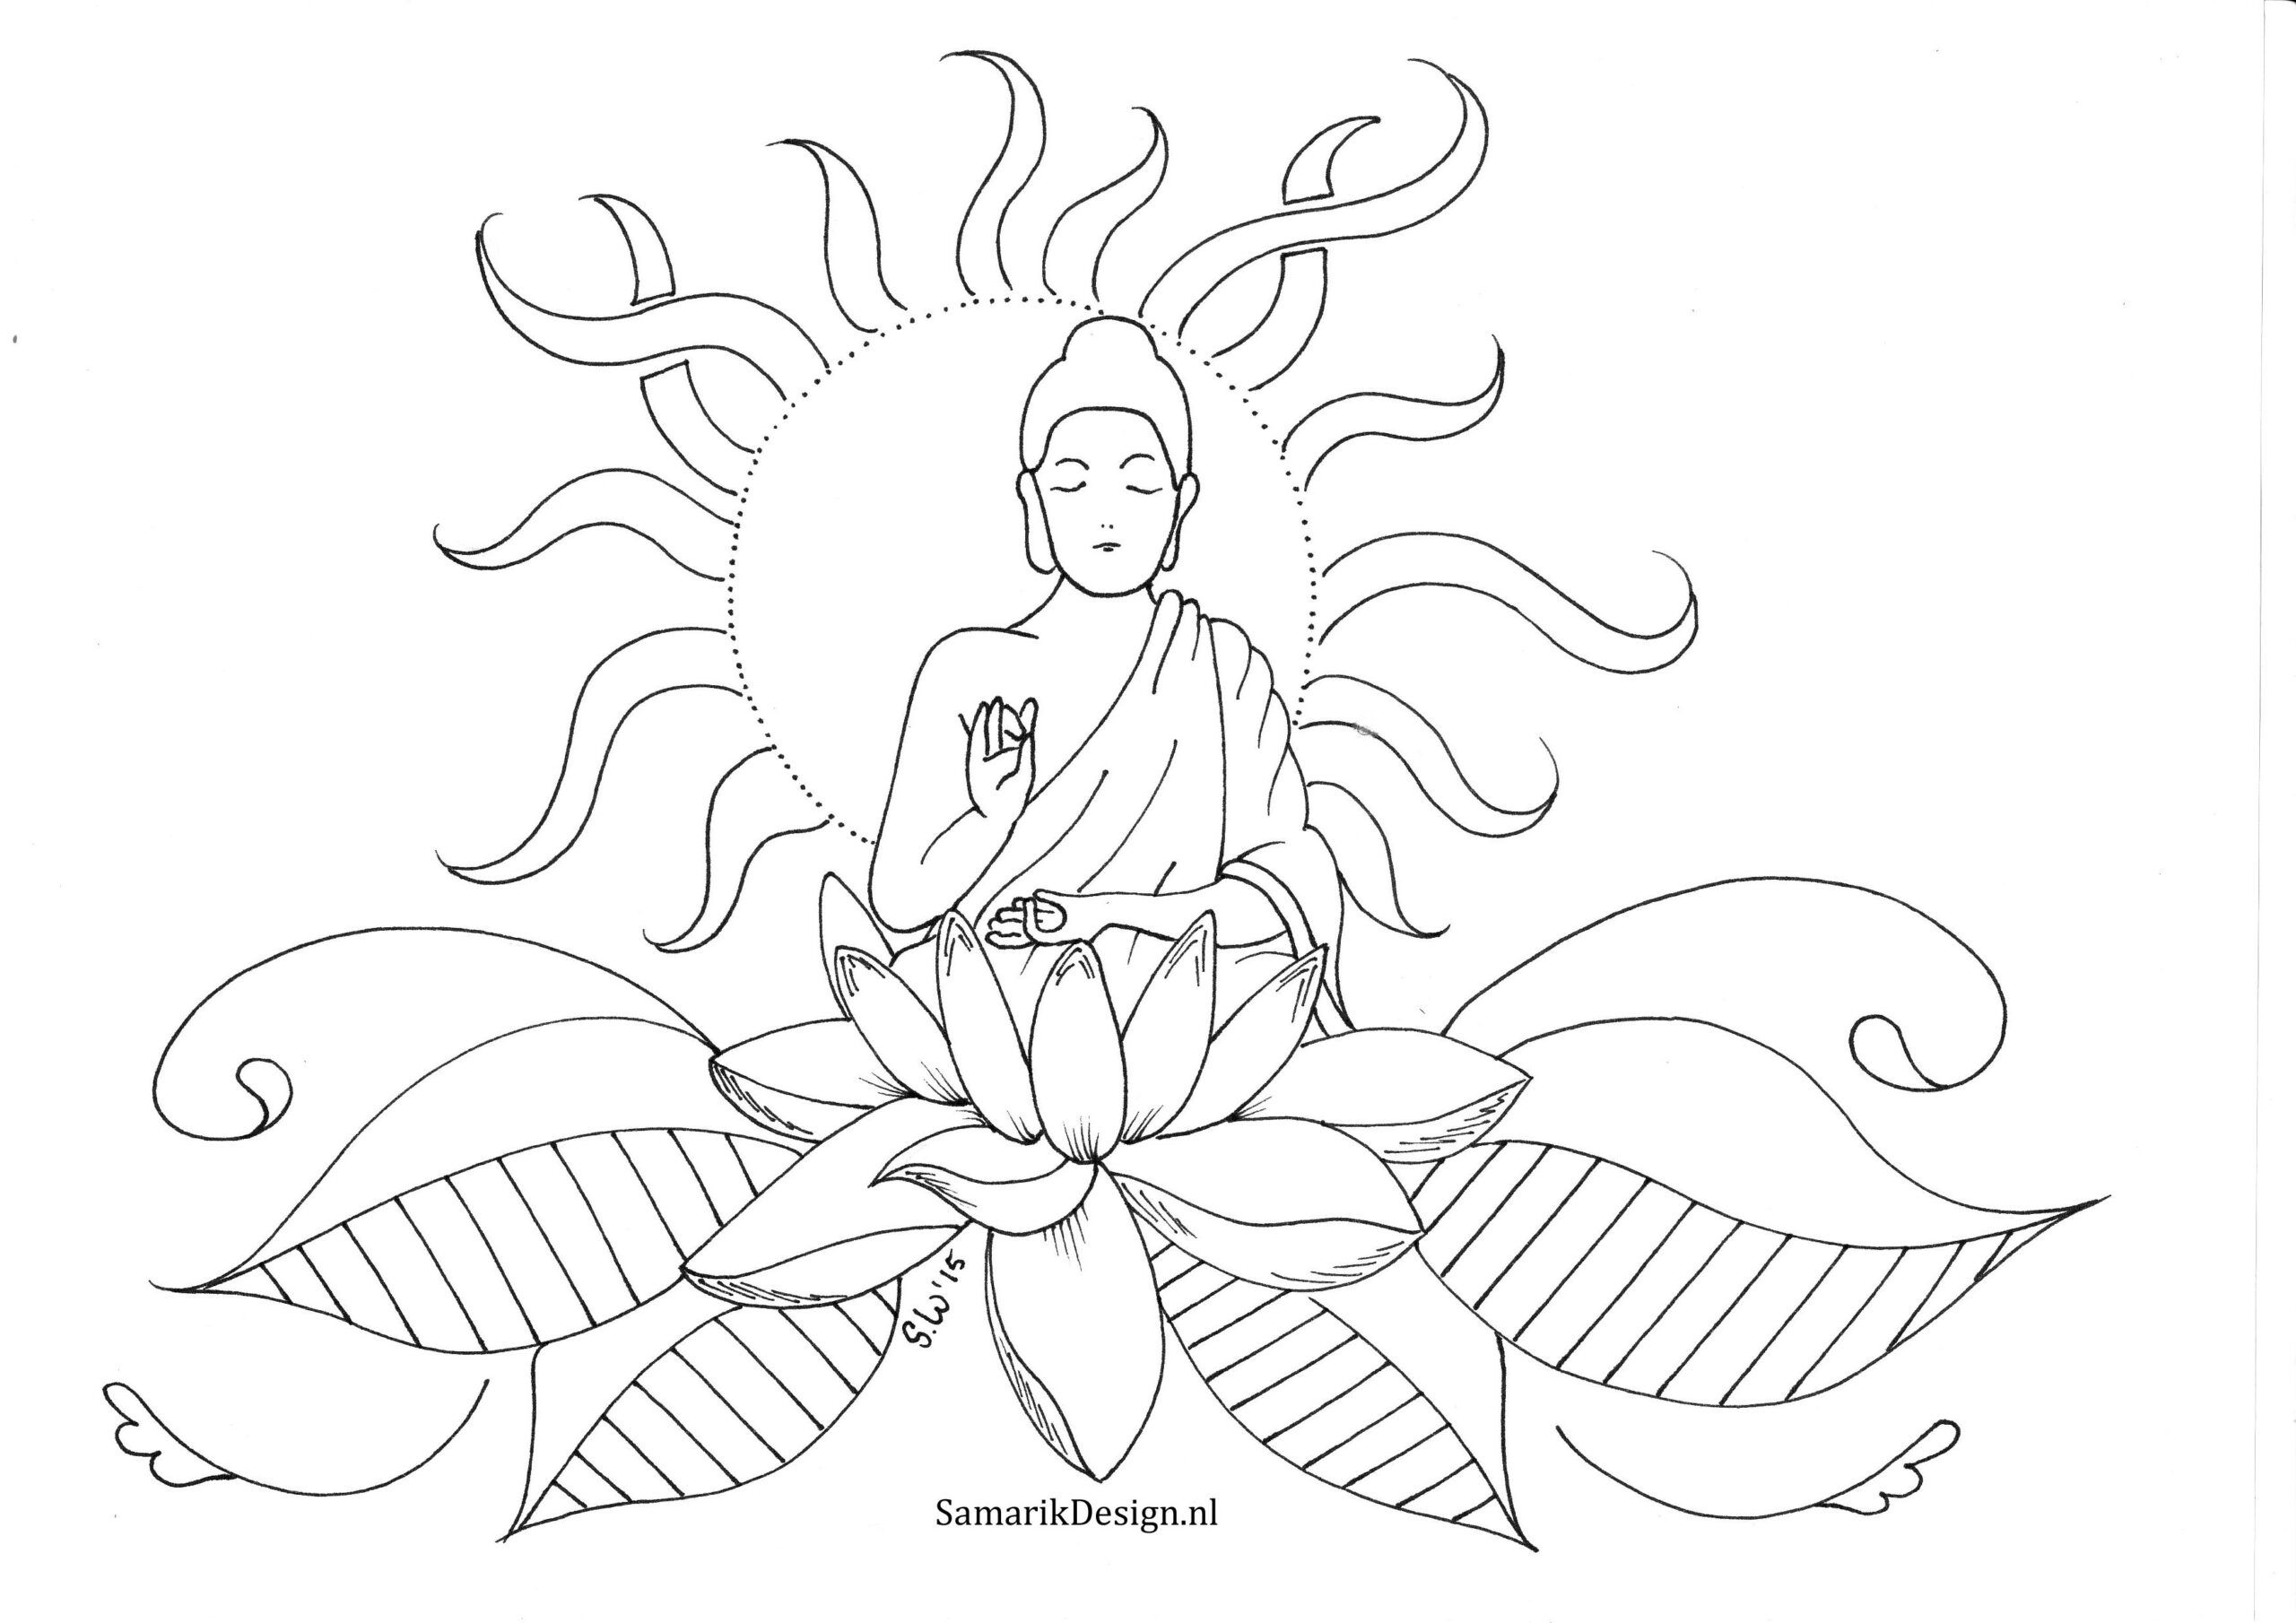 10 Besser Buddha Malvorlage Erleuchtung 2020 In 2020 Glass Painting Patterns Painting Patterns Coloring Pages